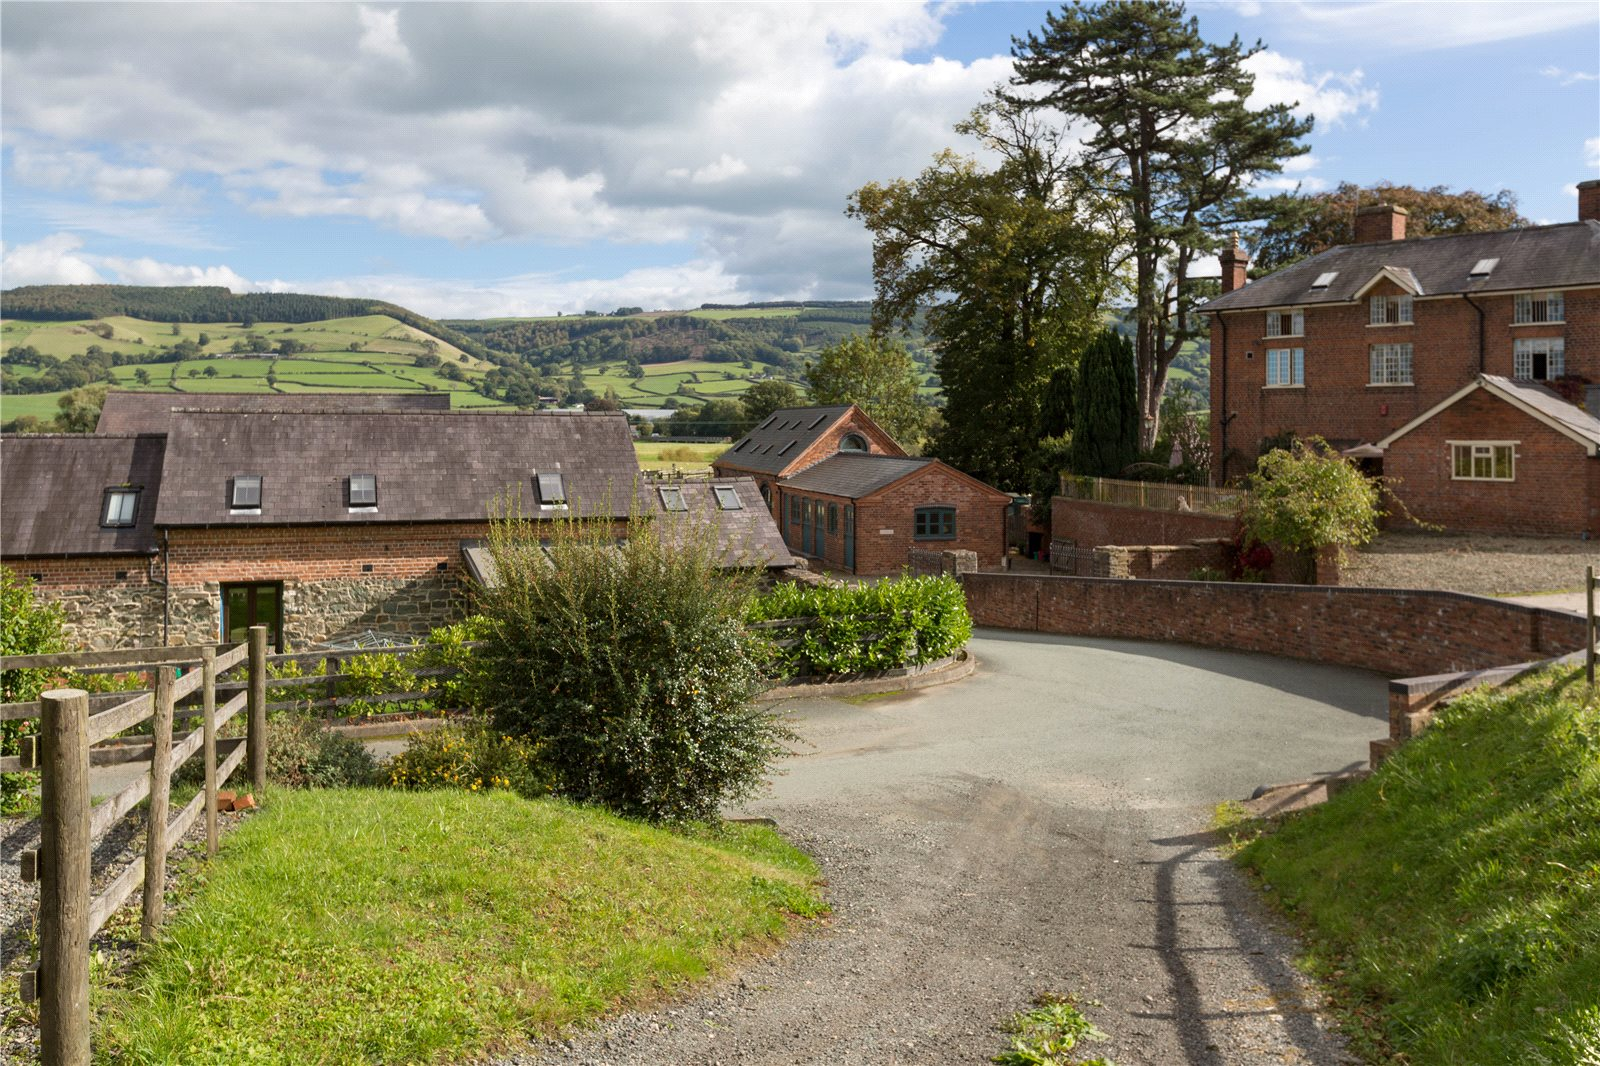 wales real estate and homes for sale christie s international real rh christiesrealestate com